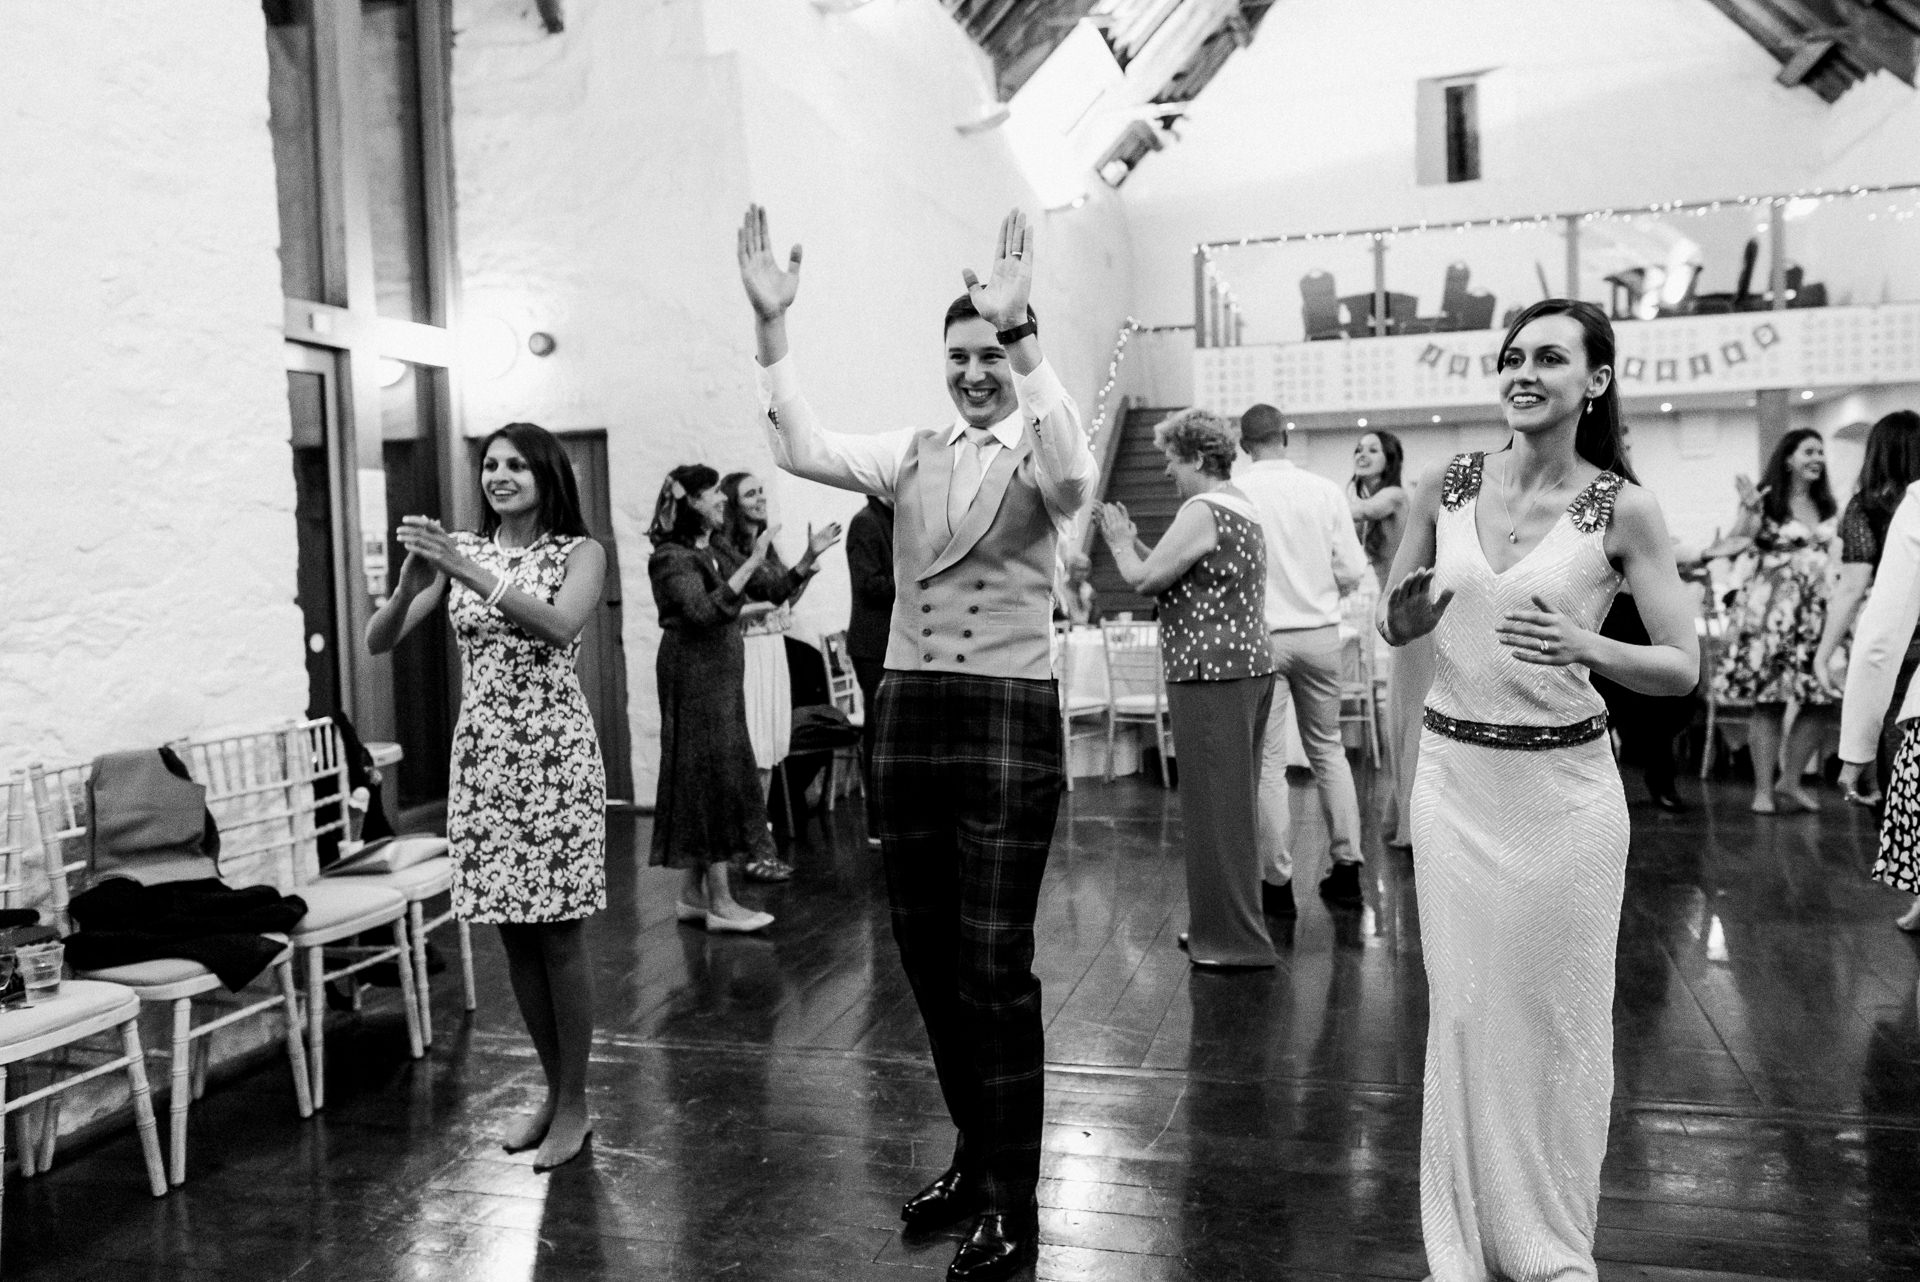 Dunster tithe barn ceilidh dancing